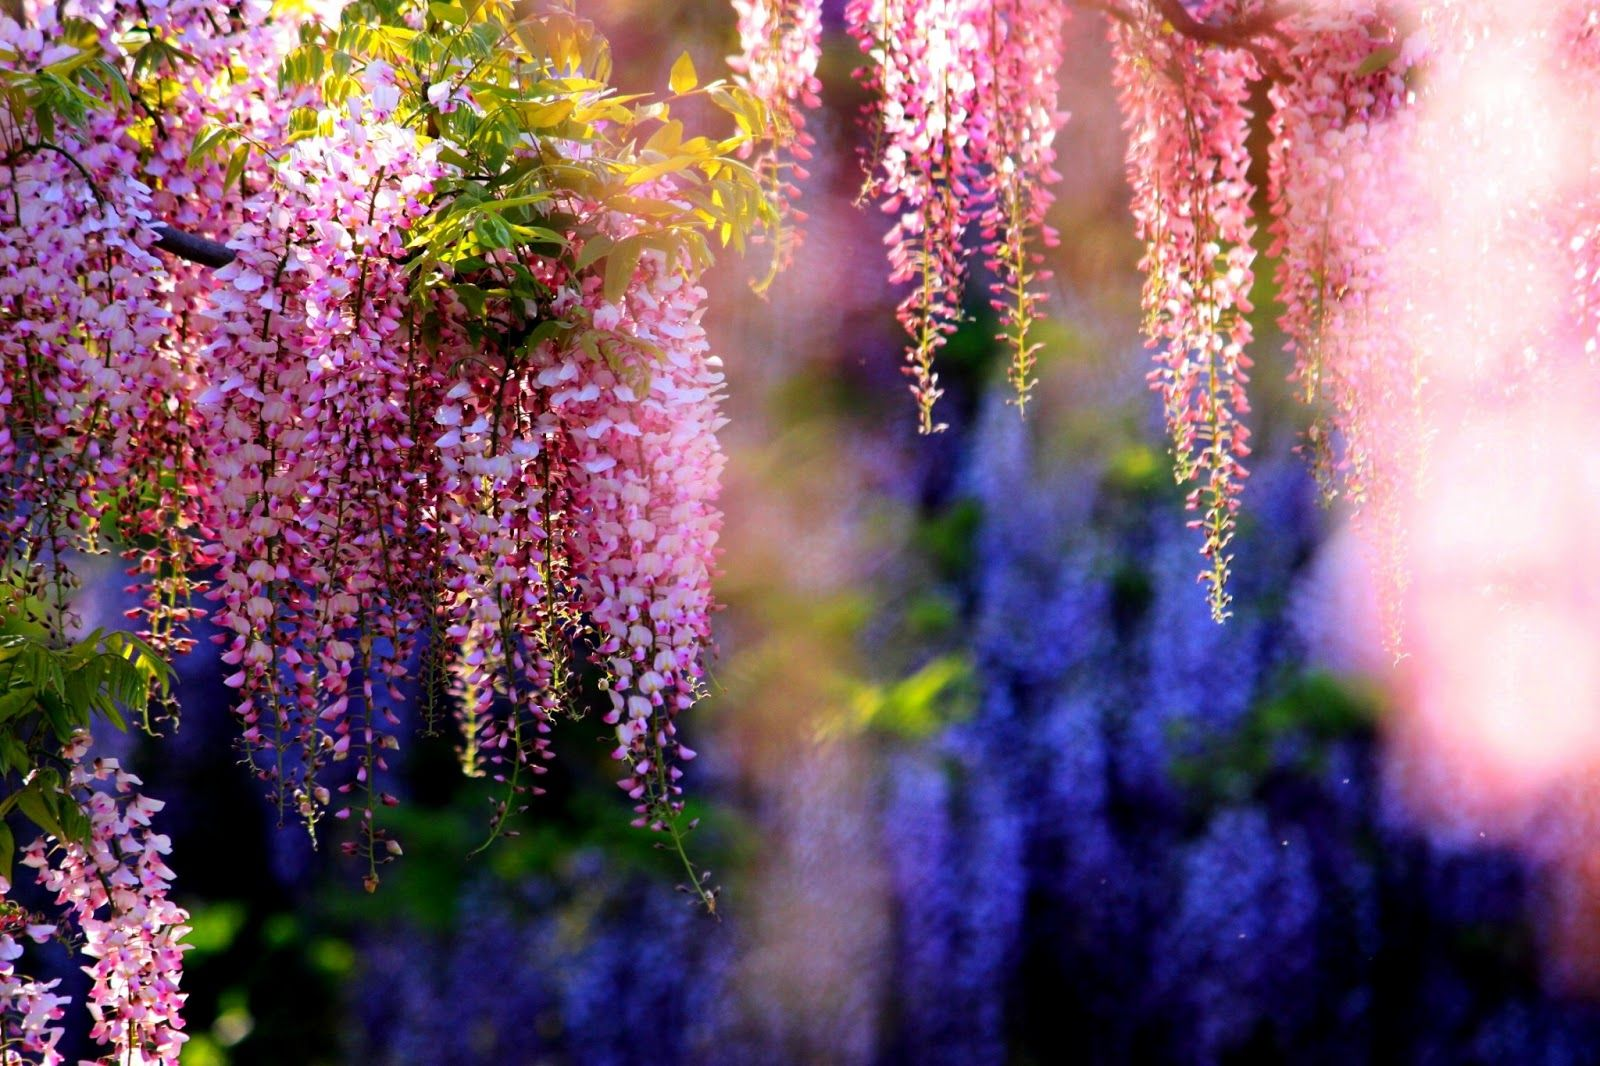 Wisteria Tree Wallpaper Xhorni Com Botanical Enchantment Wisteria Tree Wisteria Plants